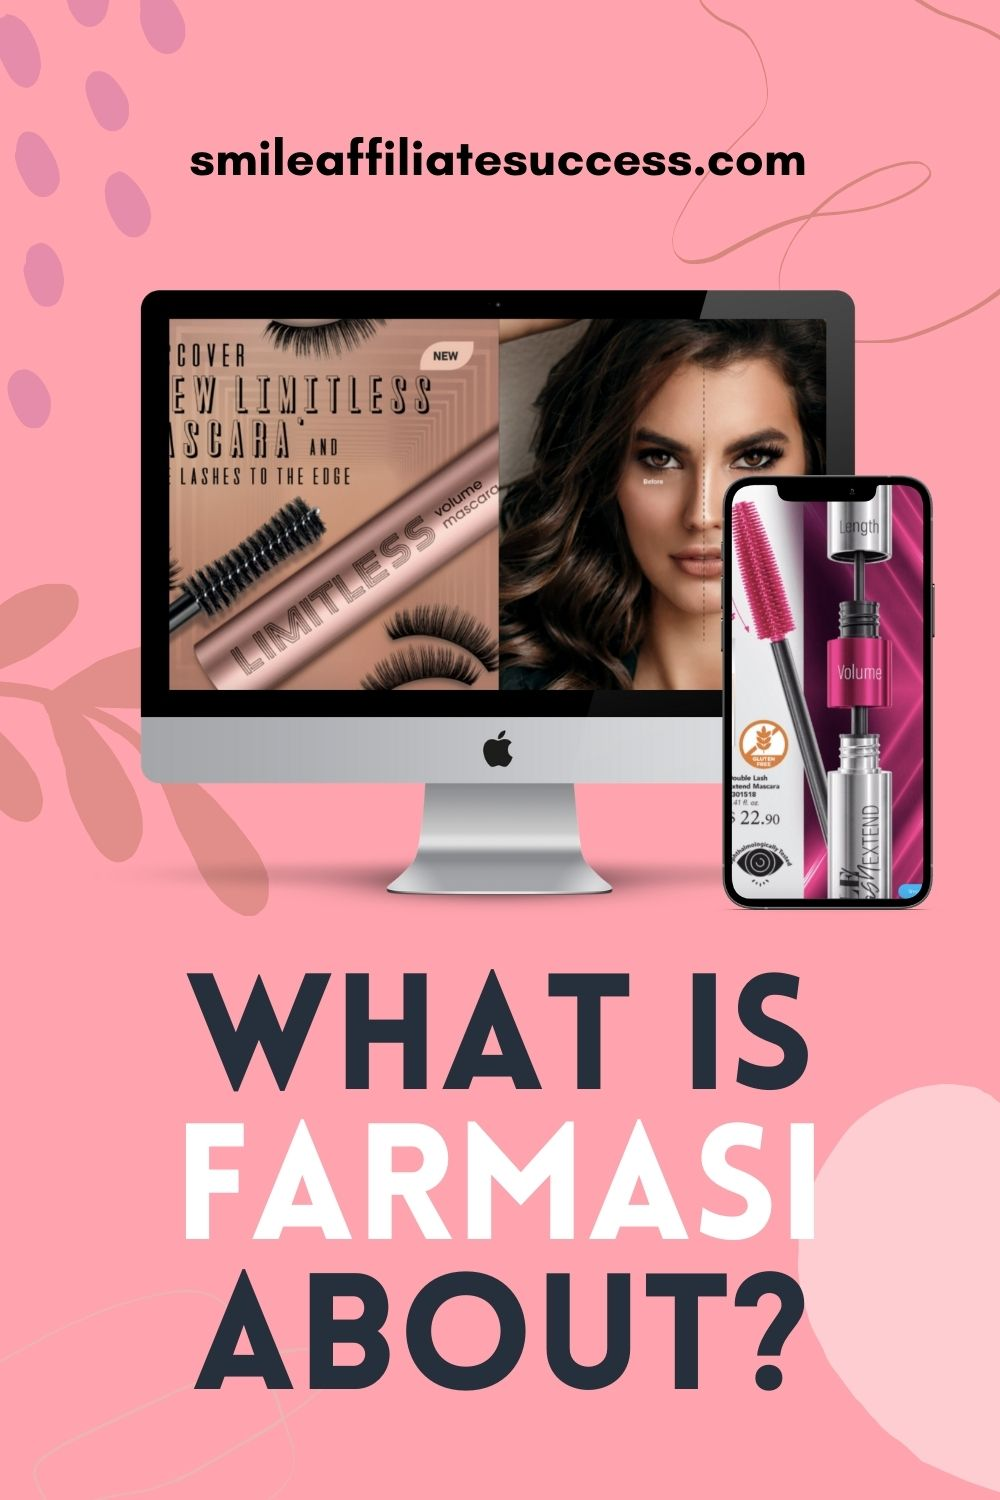 What Is Farmasi About?